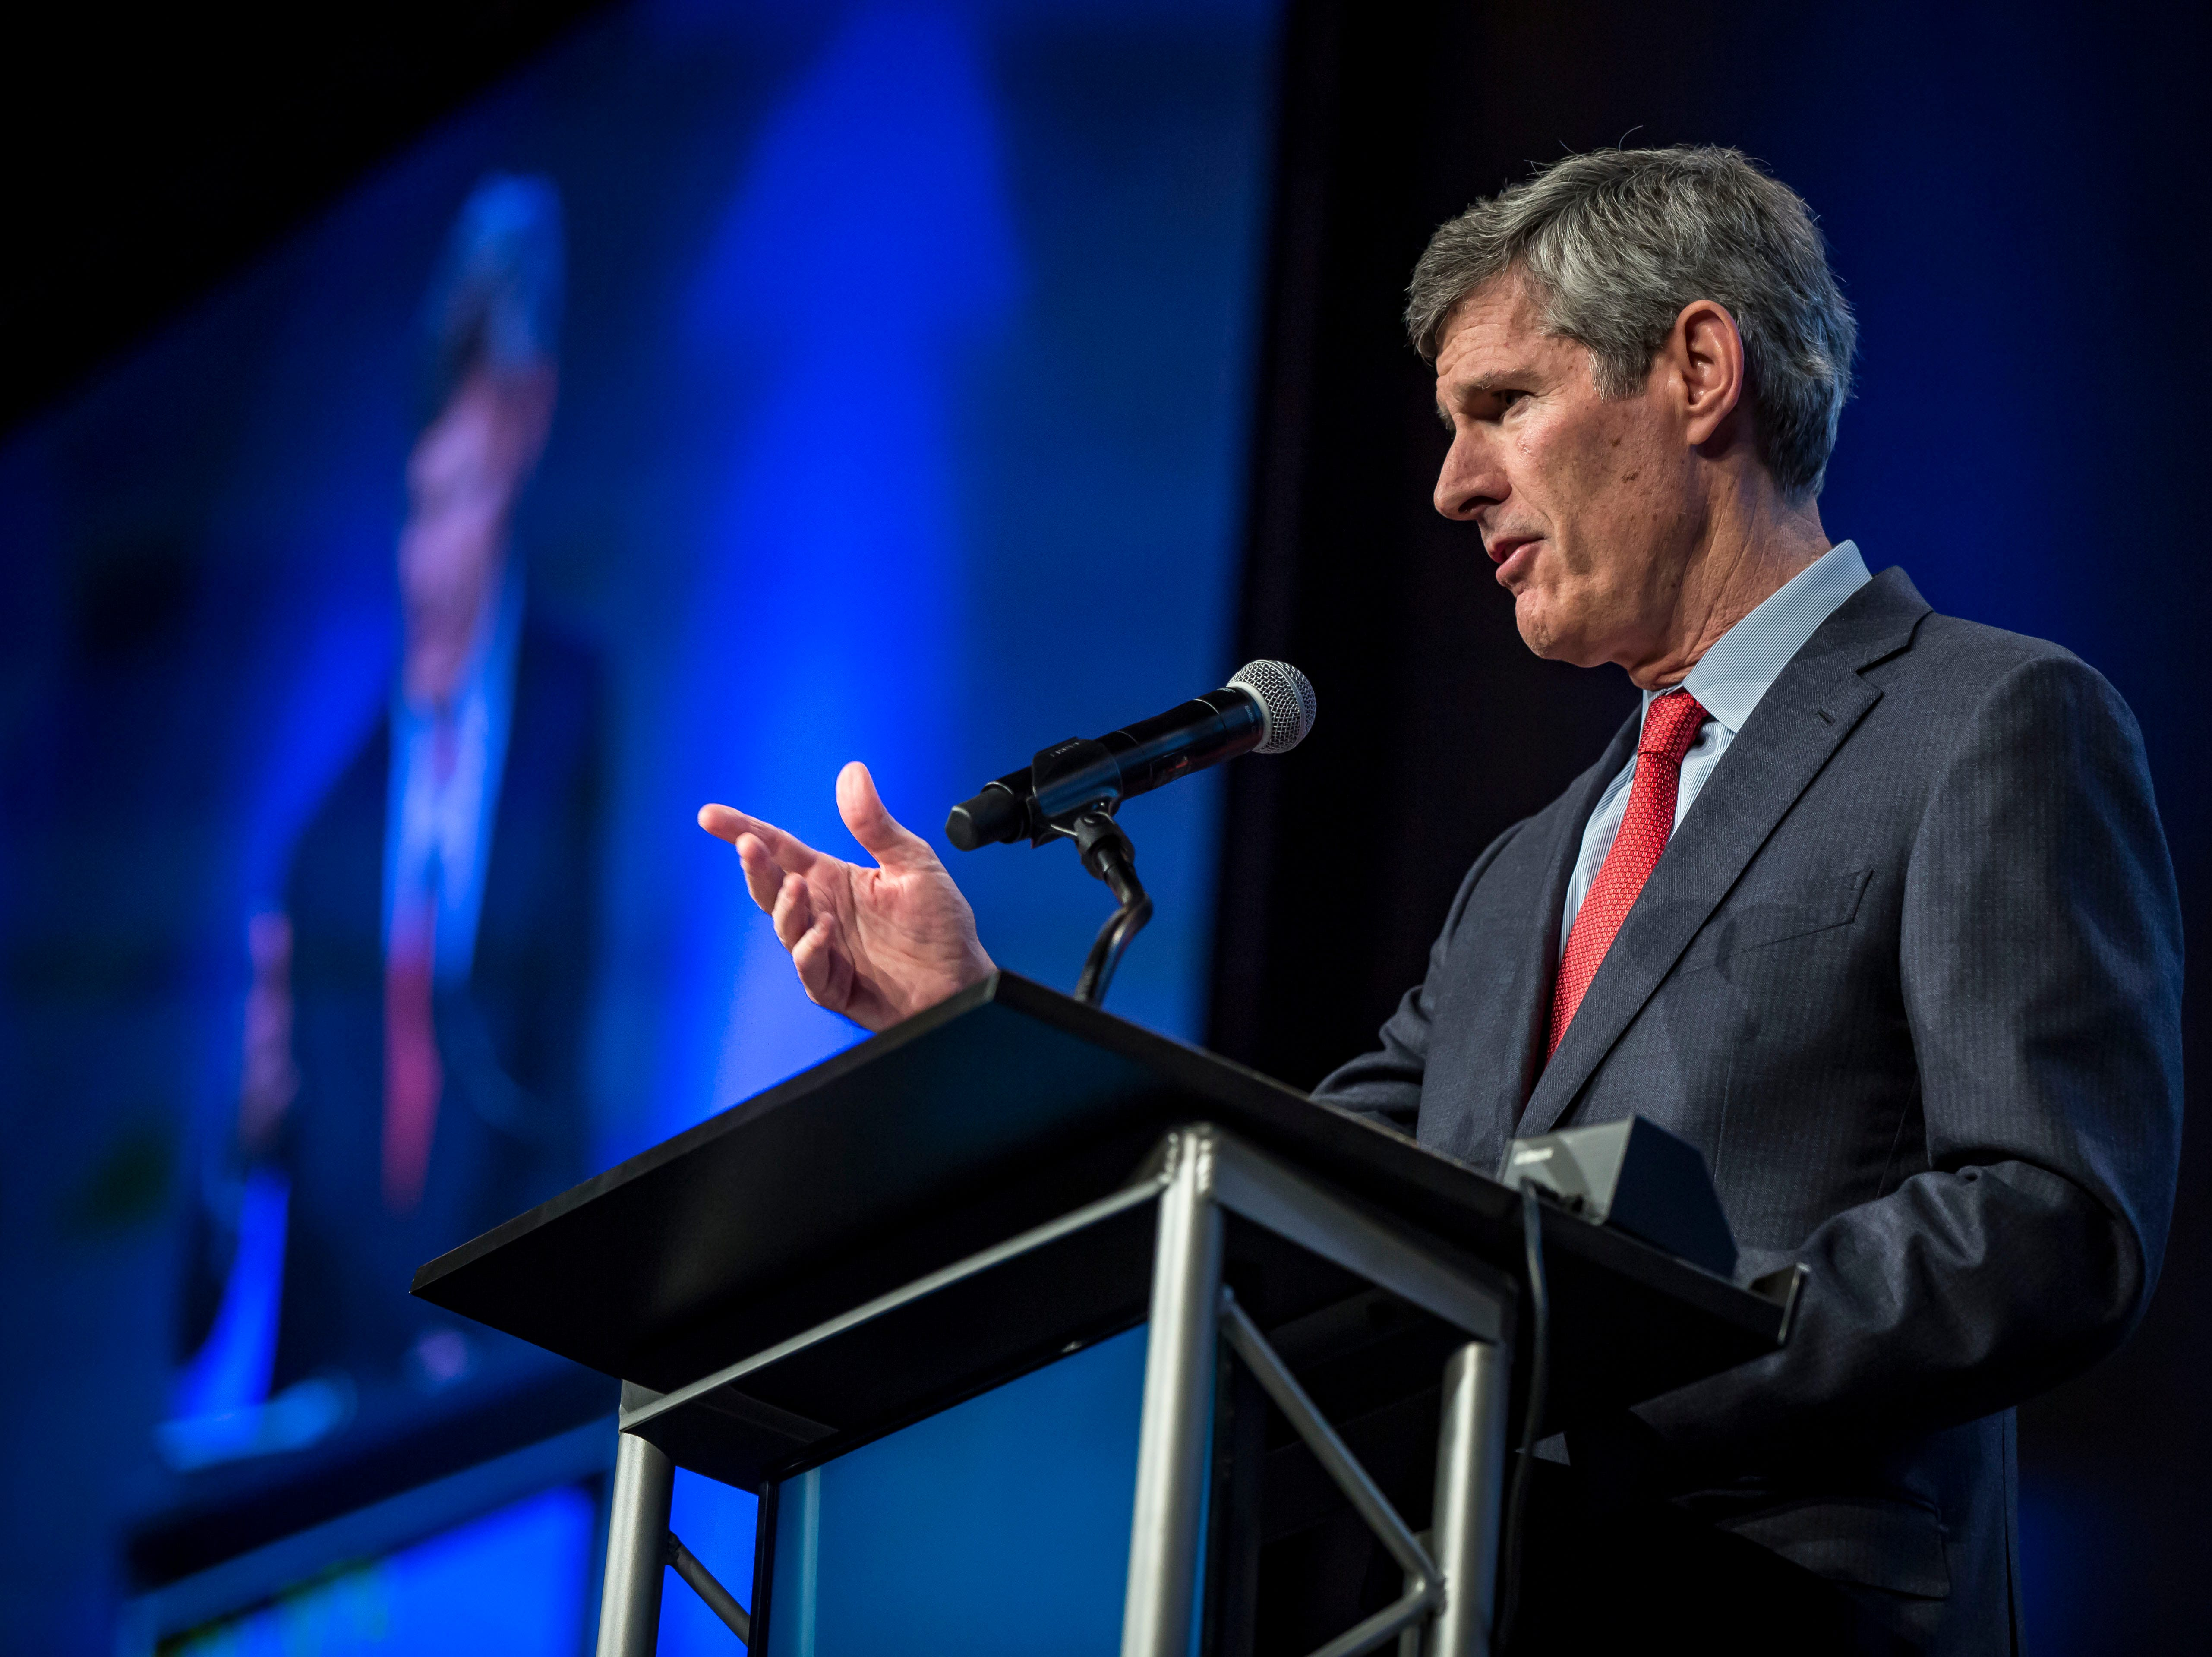 Fred hubbell speaks at the Iowa Democratic Party's fall gala Saturday, Oct. 6, 2018, at the Iowa Events Center in Des Moines.